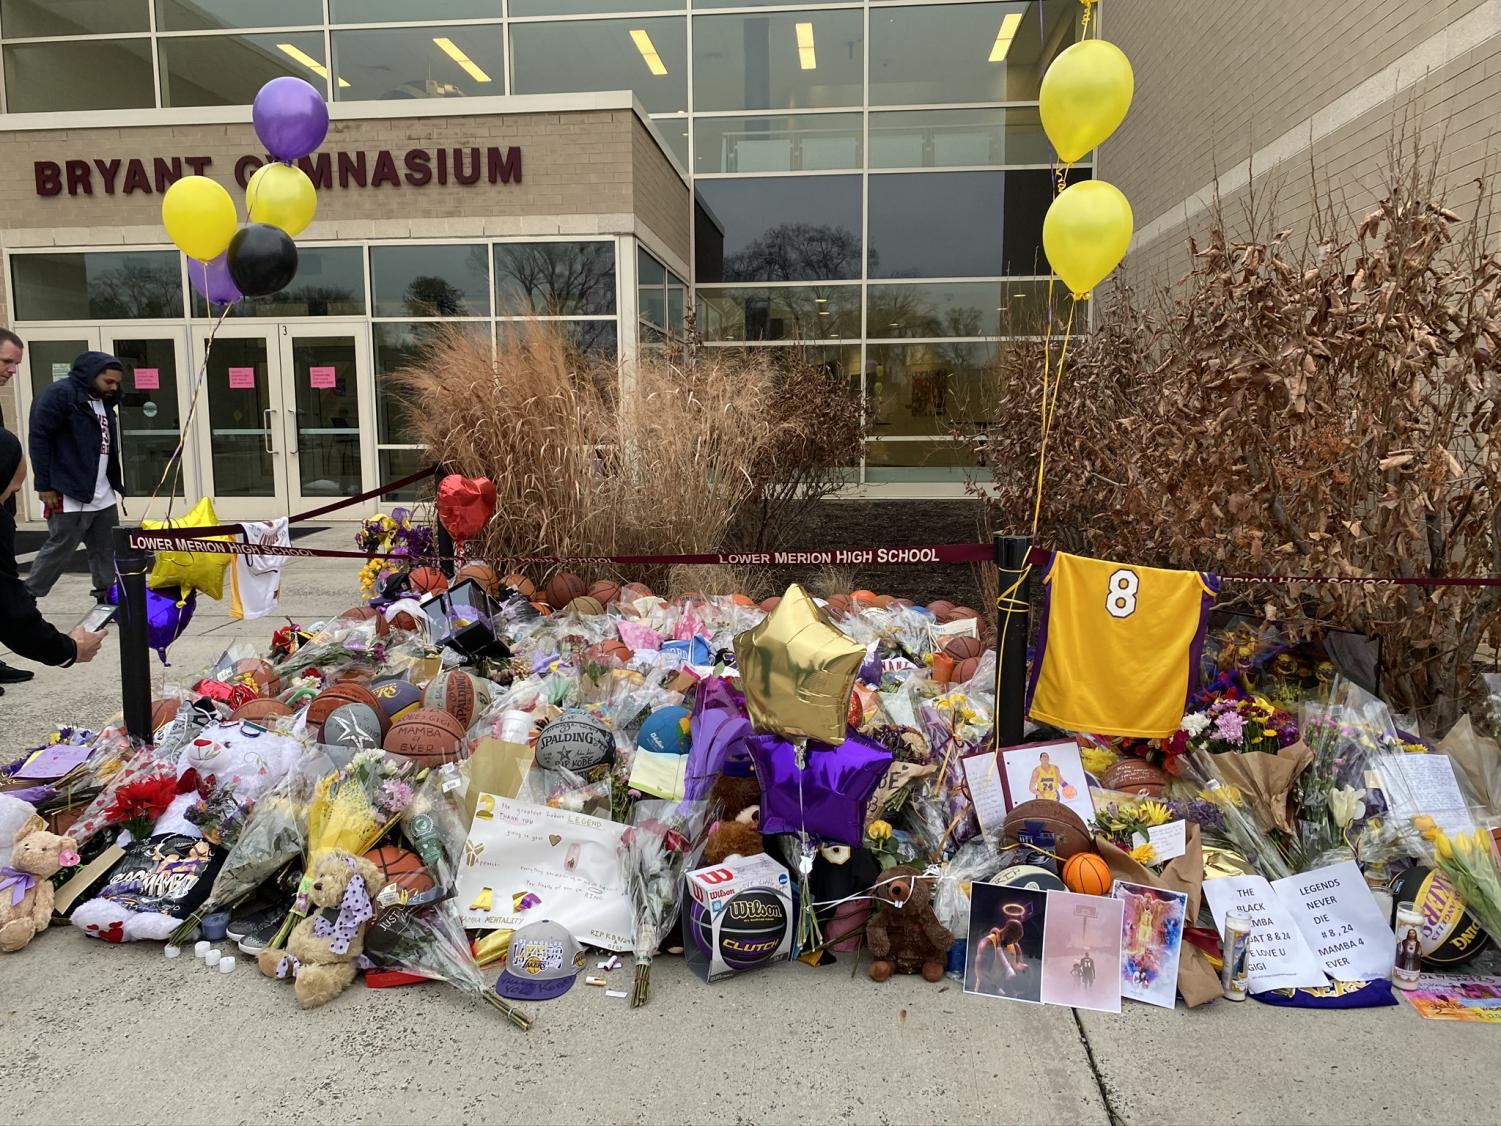 A memorial stands Lower Merion High School, Kobe Bryant's alma mater, which is fewer that 15 miles from Norristown. Bryant was drafted into the NBA directly from his high school.